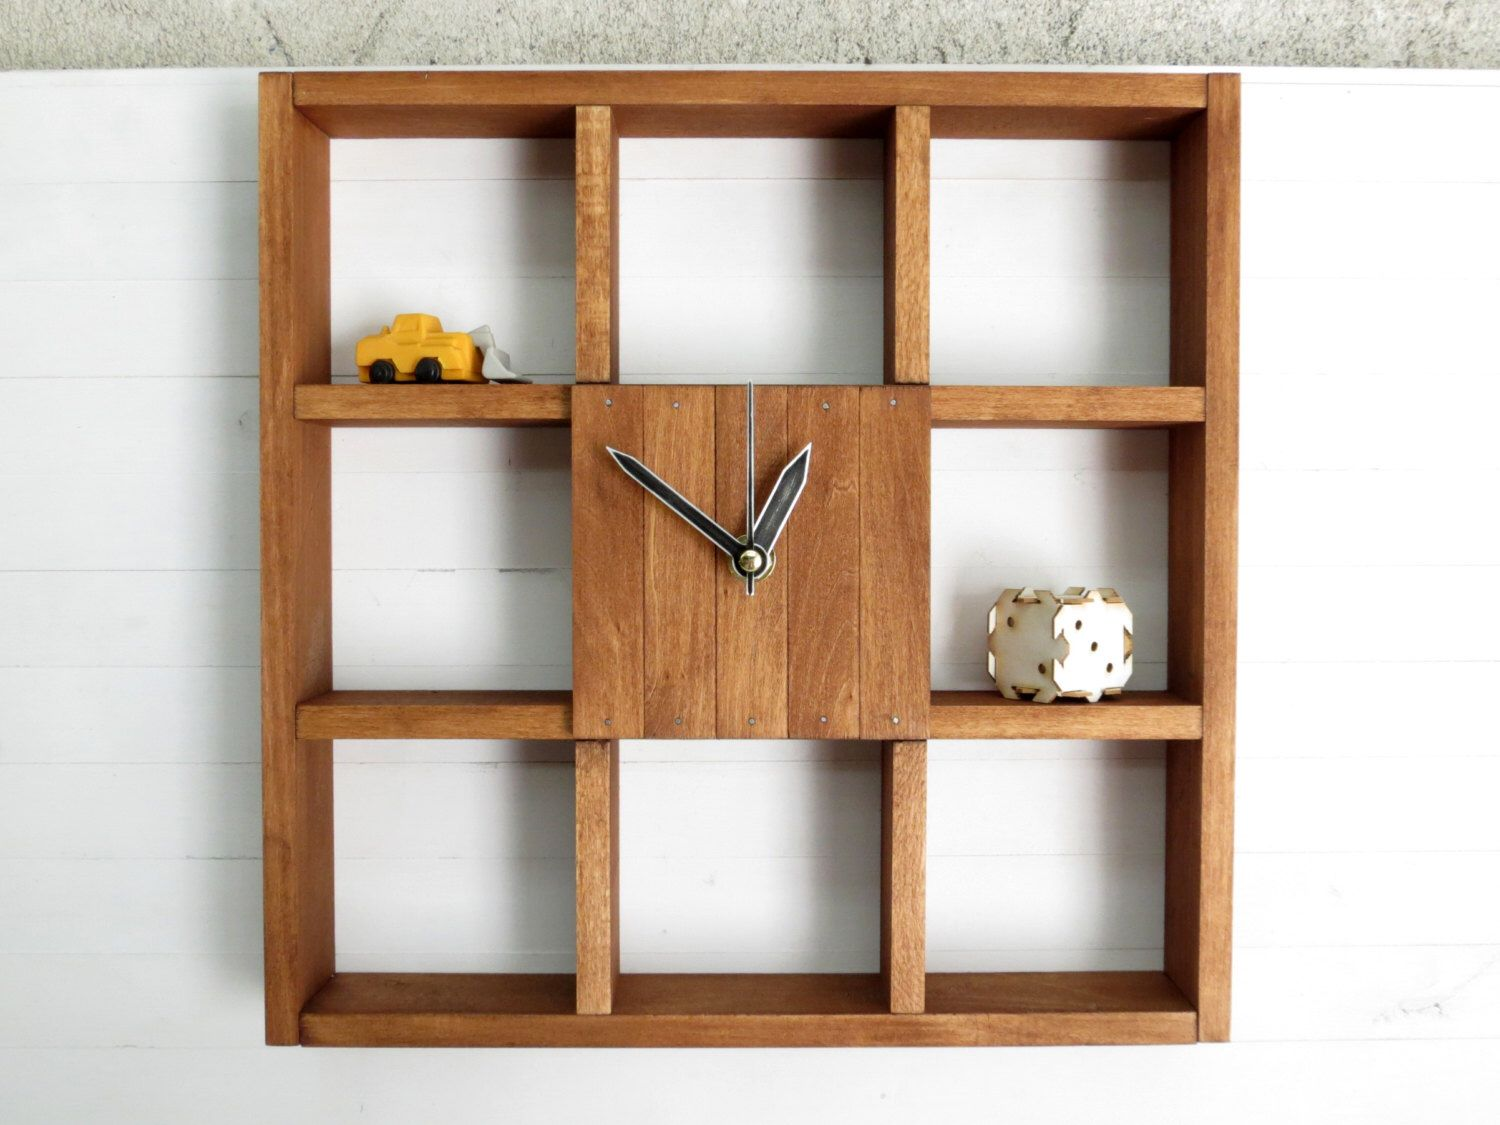 Wooden Wall Clock Box for Office and Home Decor, Square ...